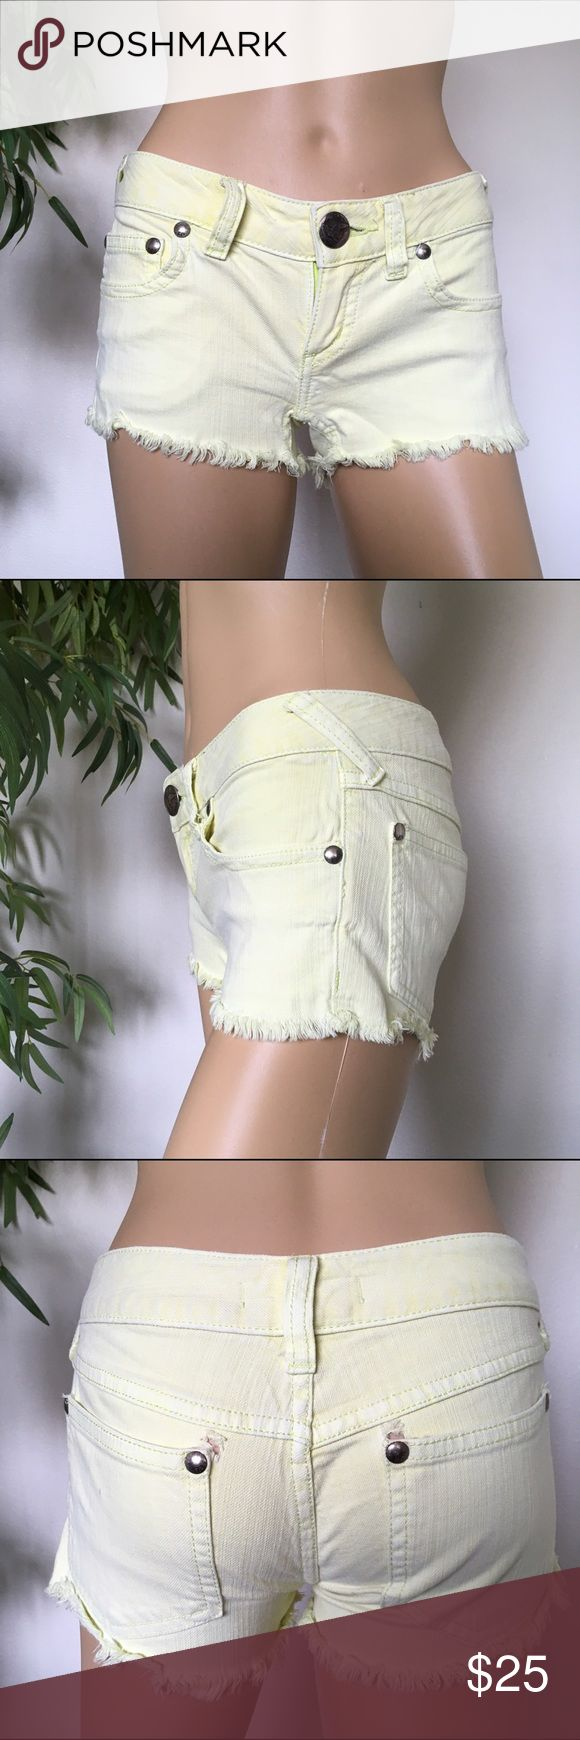 Free People Lime Green Mini Shorts size 24 Pre Loved super sexy mini lime green shorts has a tiny stain one the back pocket as seen on photo size W24 Free People Shorts Jean Shorts